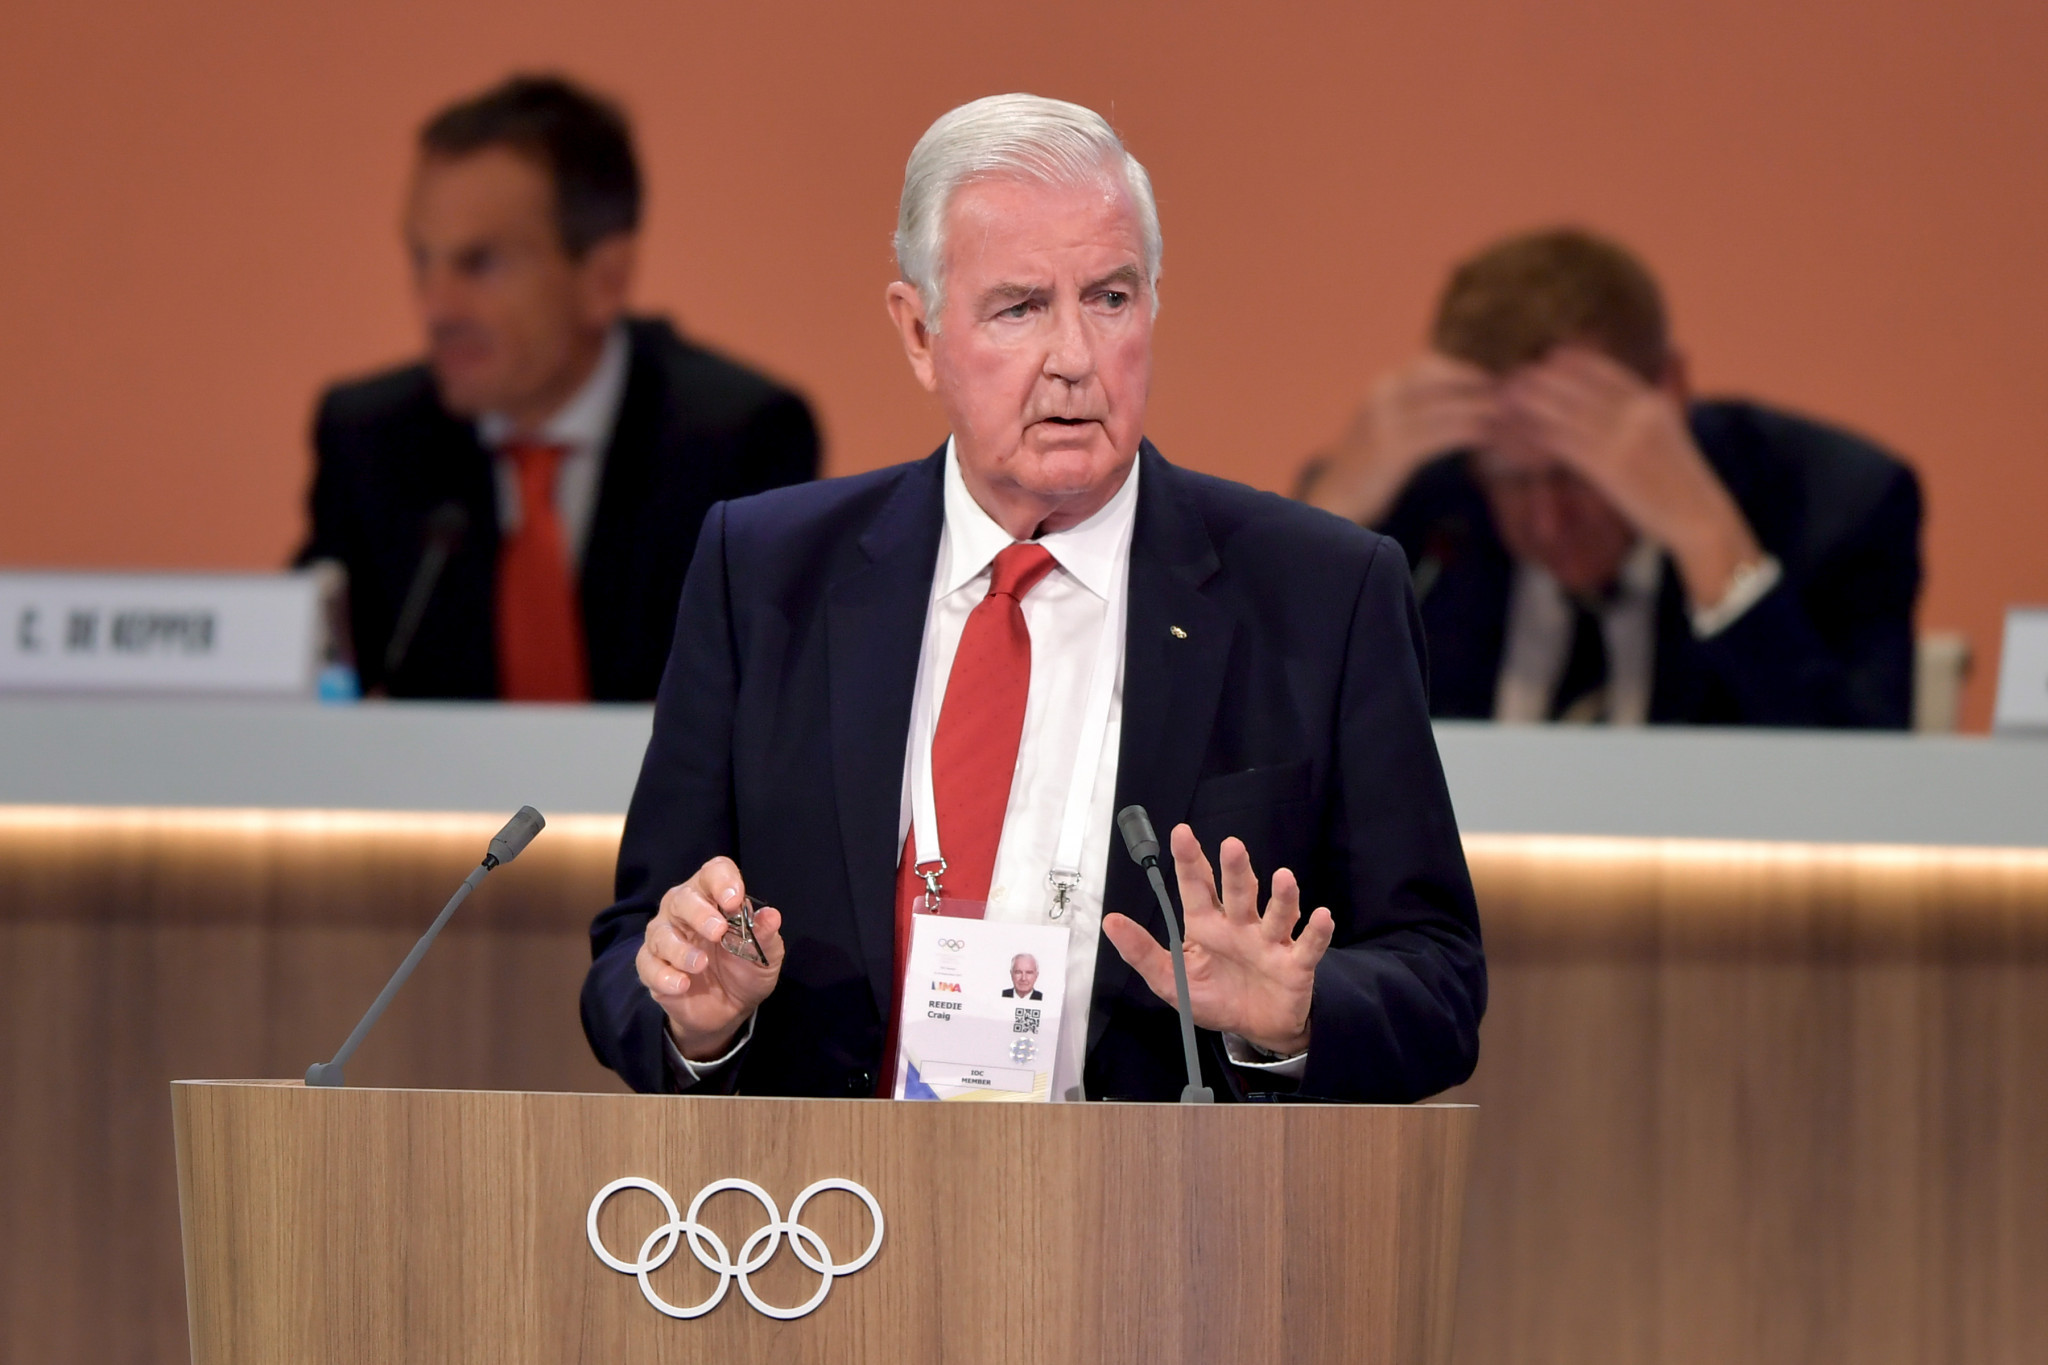 Exclusive: WADA set to face criticism at Paris meeting from Governments over criticism of NADOs